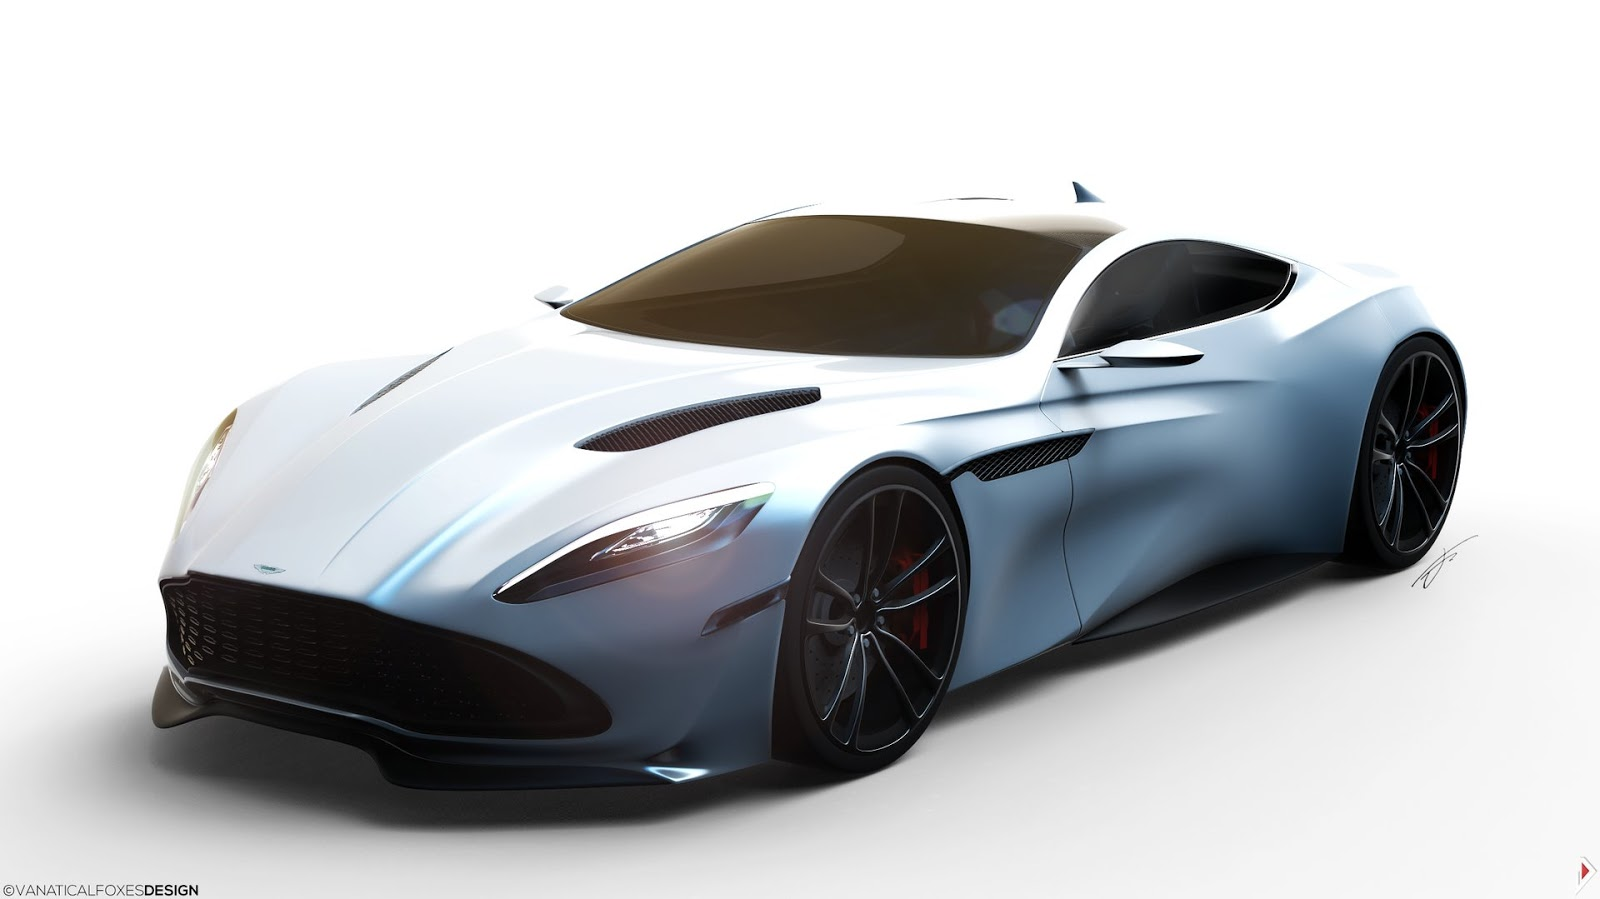 15 Year Old Thai Renders New Aston Martin DB11 Carscoops